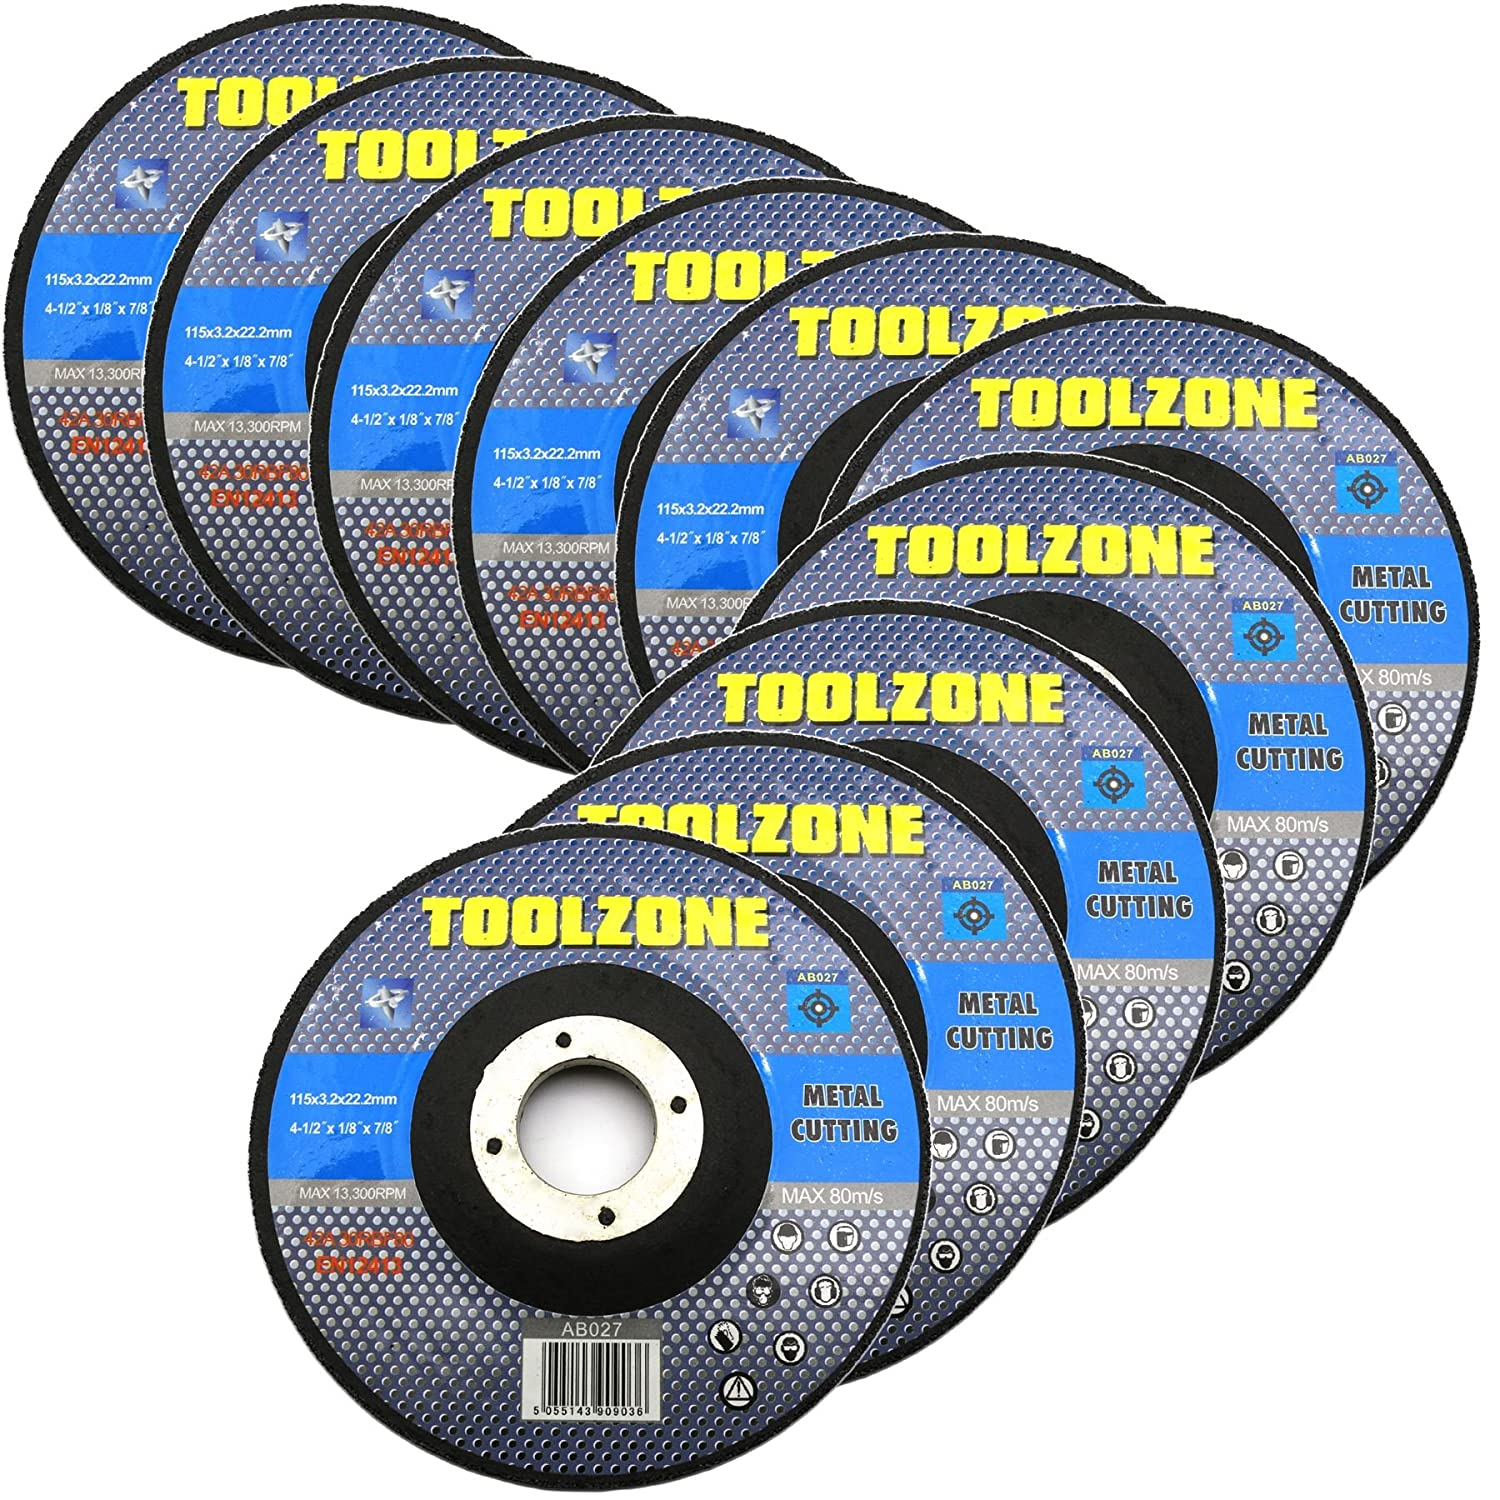 5x 115mm Depressed Centre Cutting Discs 3.2mm Thin Angle Grinder Wheels